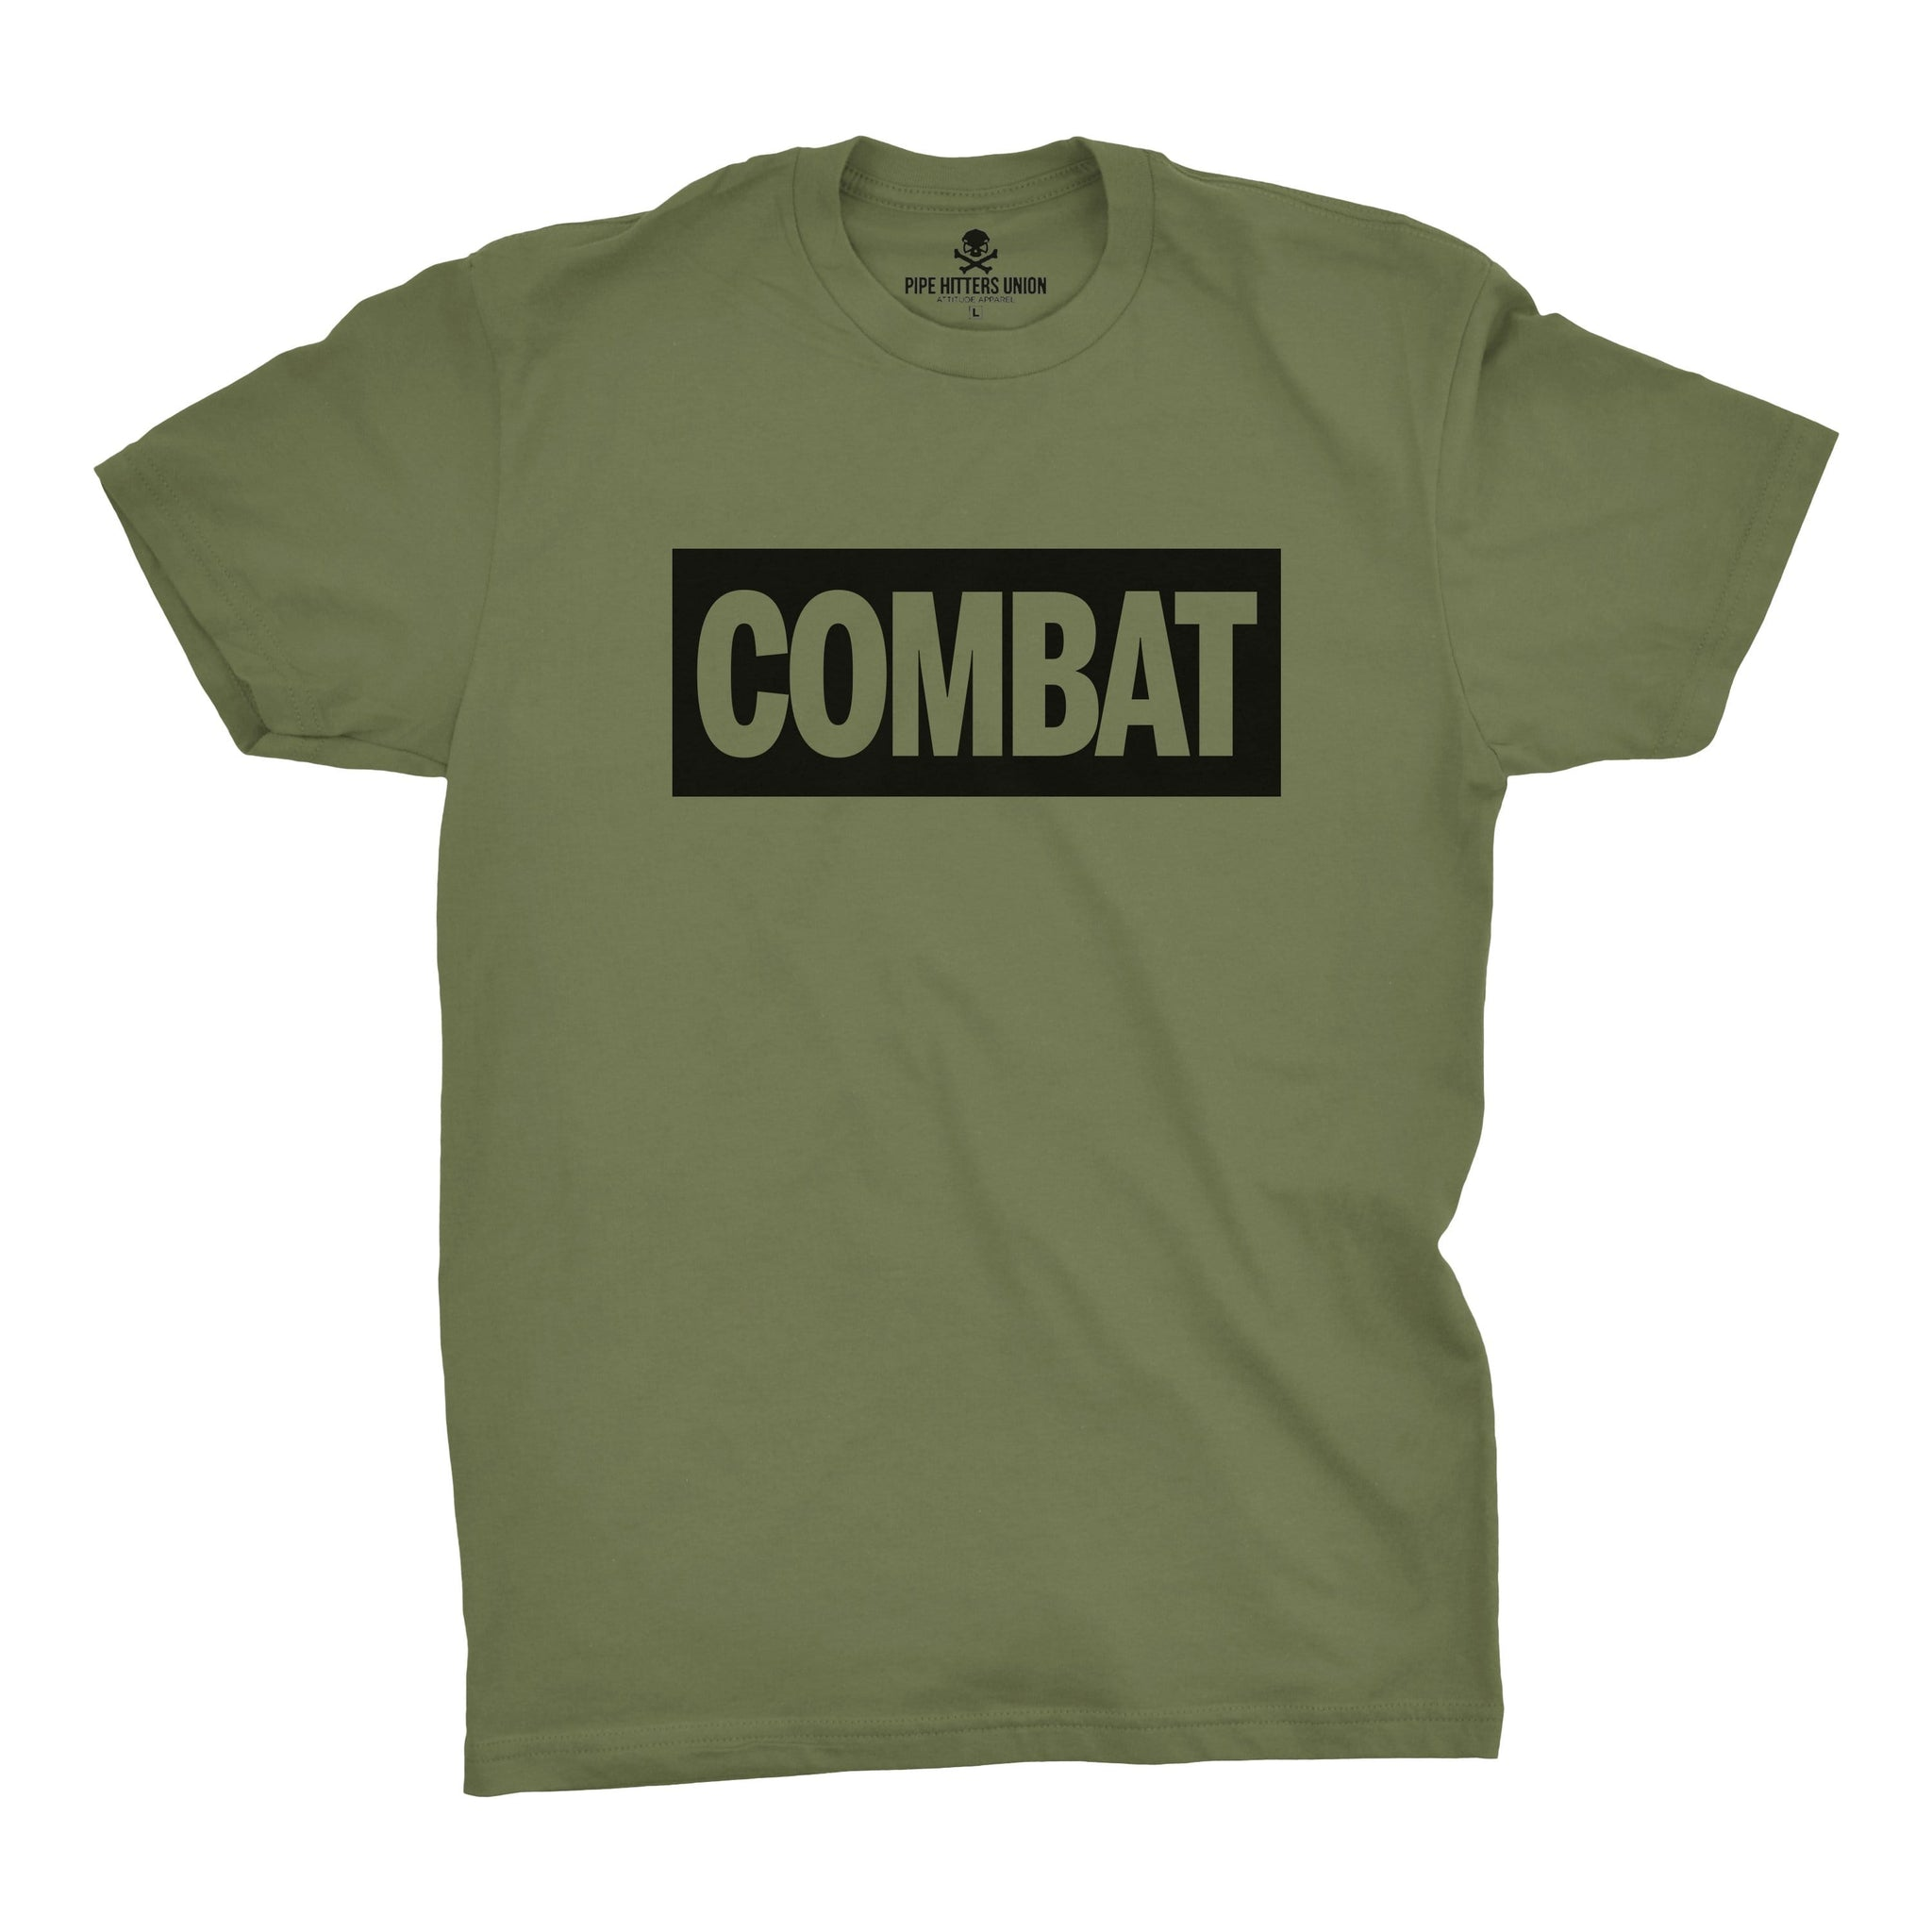 Combat - Military Green - T-Shirts - Pipe Hitters Union